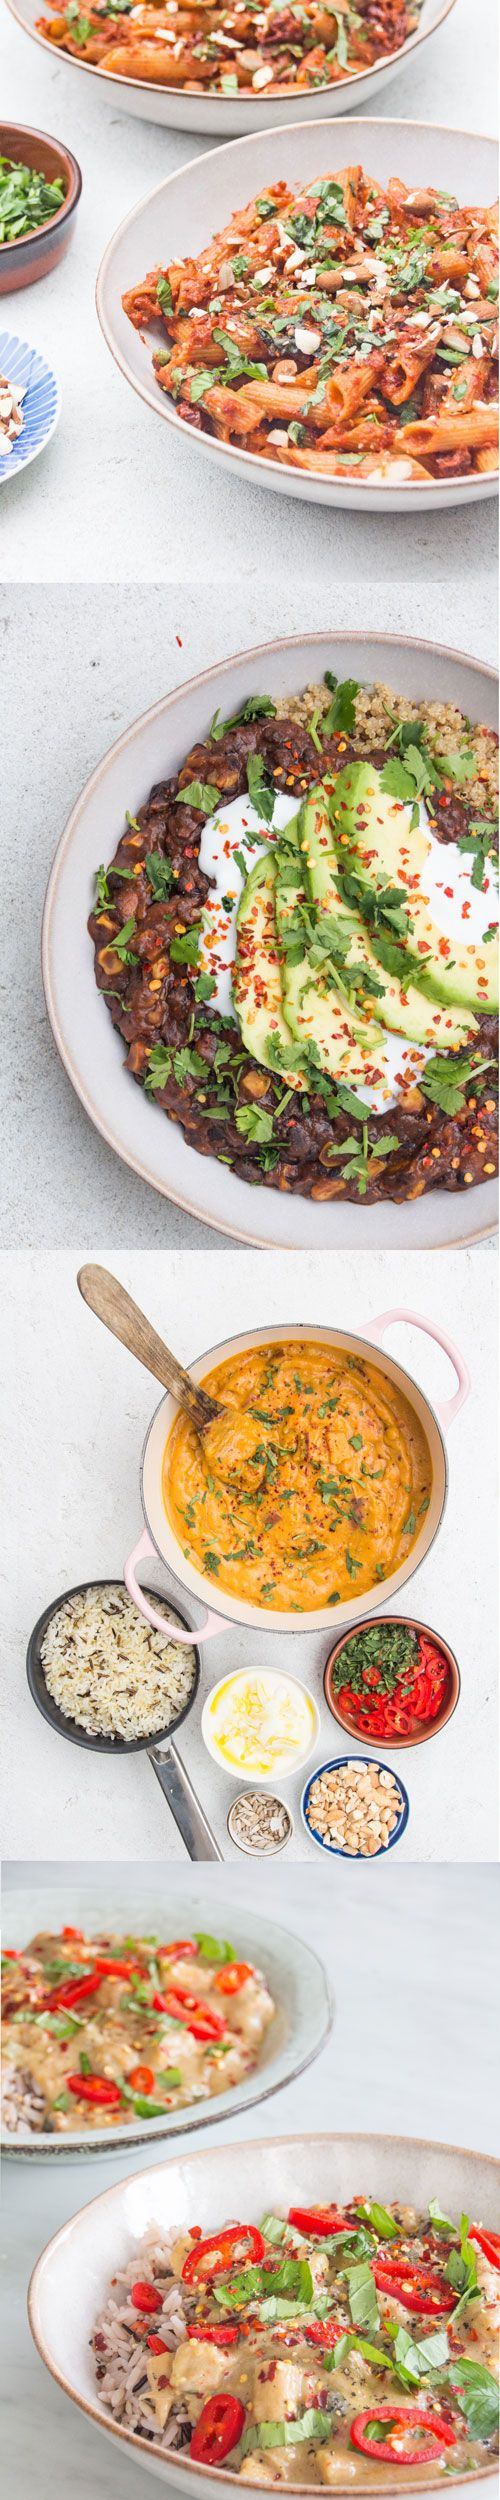 My favourite plant based winter warmers - lots of easy recipes from curries and stews to pastas, dahls, soups and potato dishes!